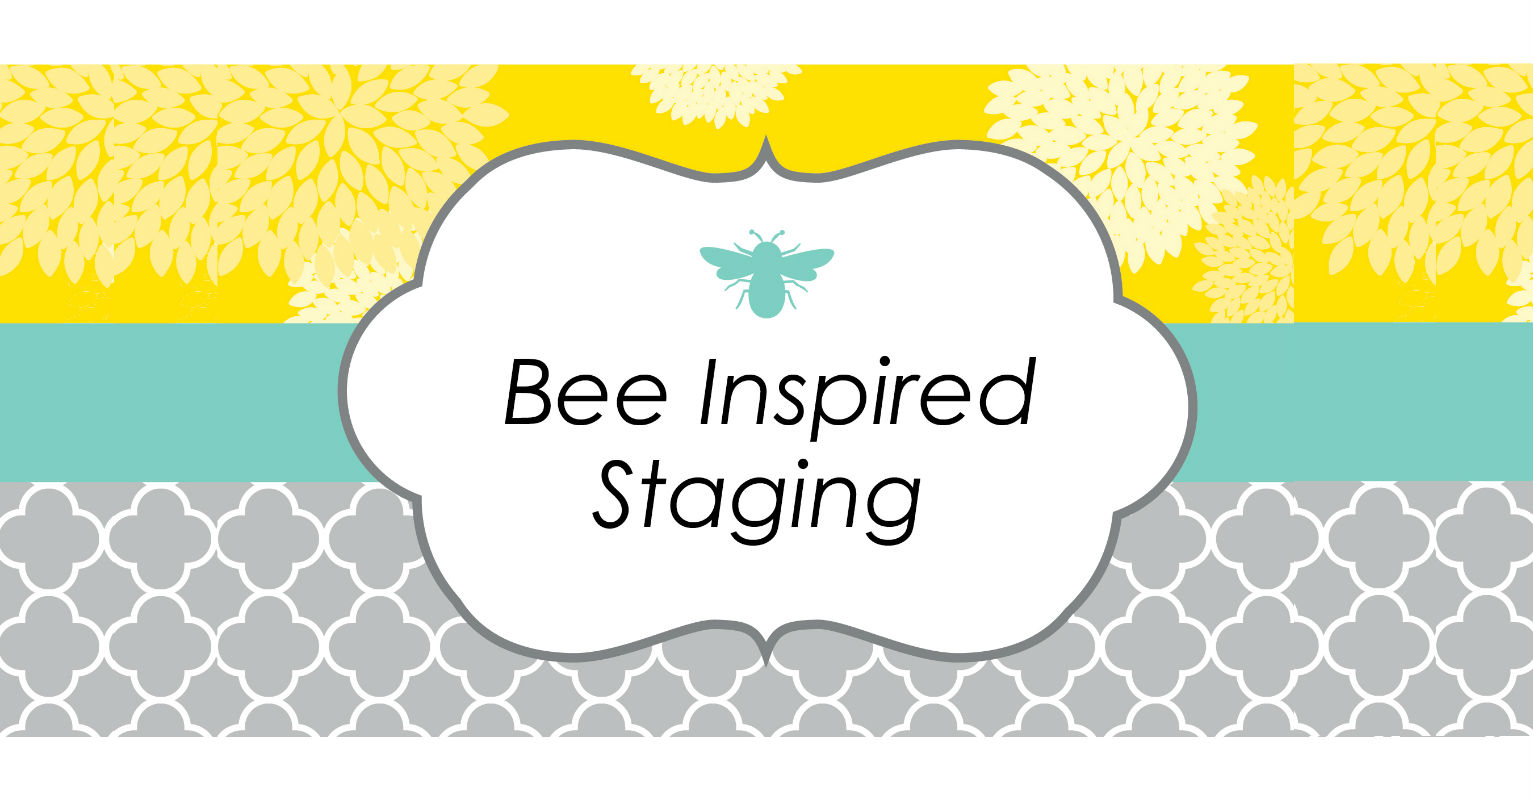 Bee_Inspired_staging_logo4